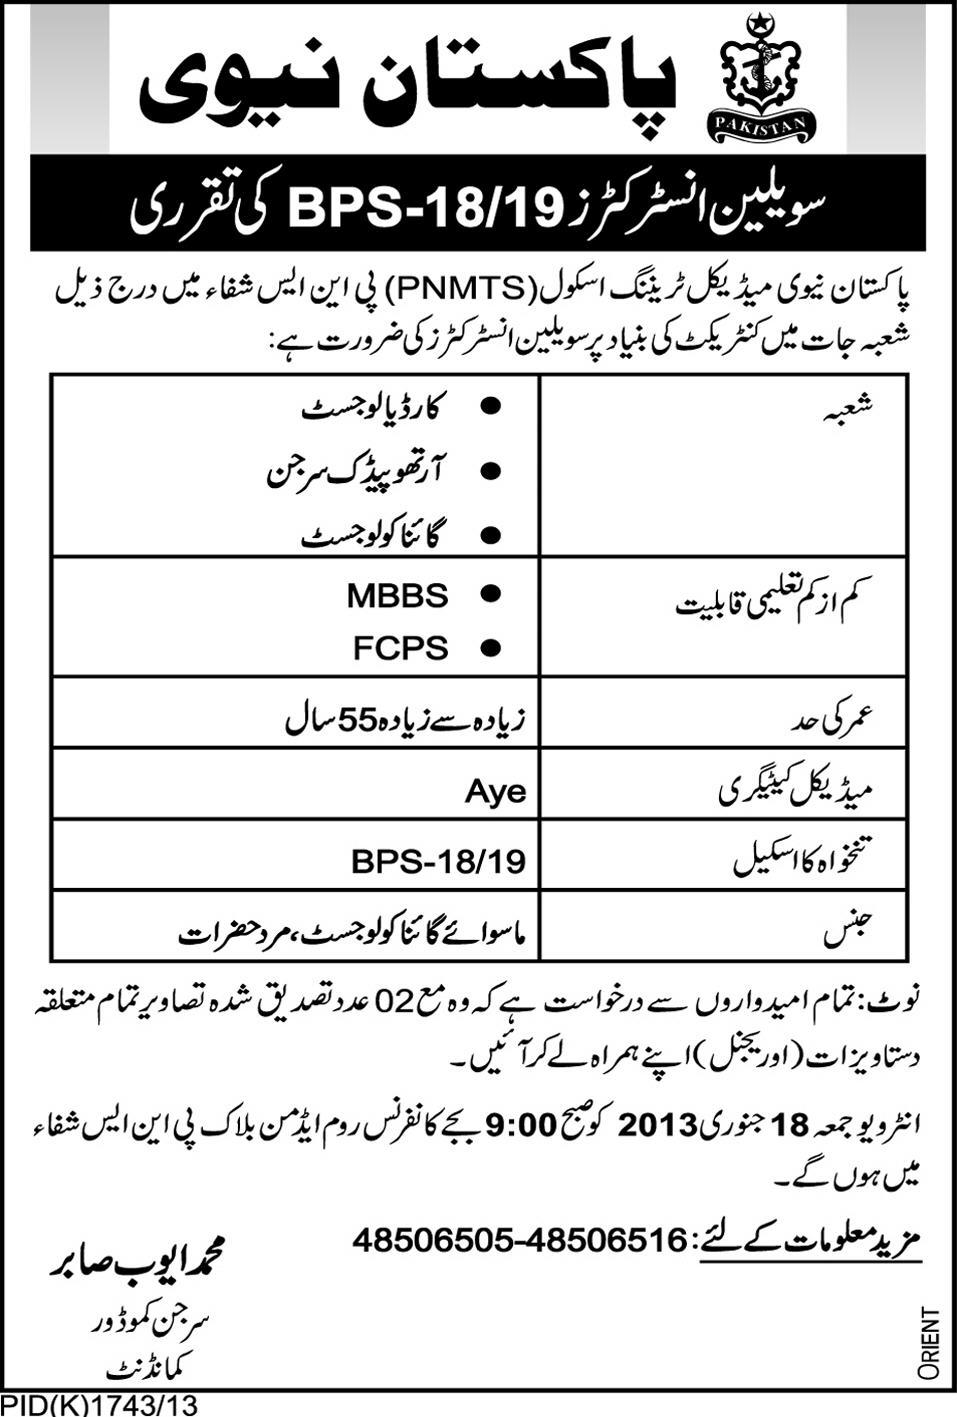 jobs in navy Civil Instructors Jobs in Pakistan Navy